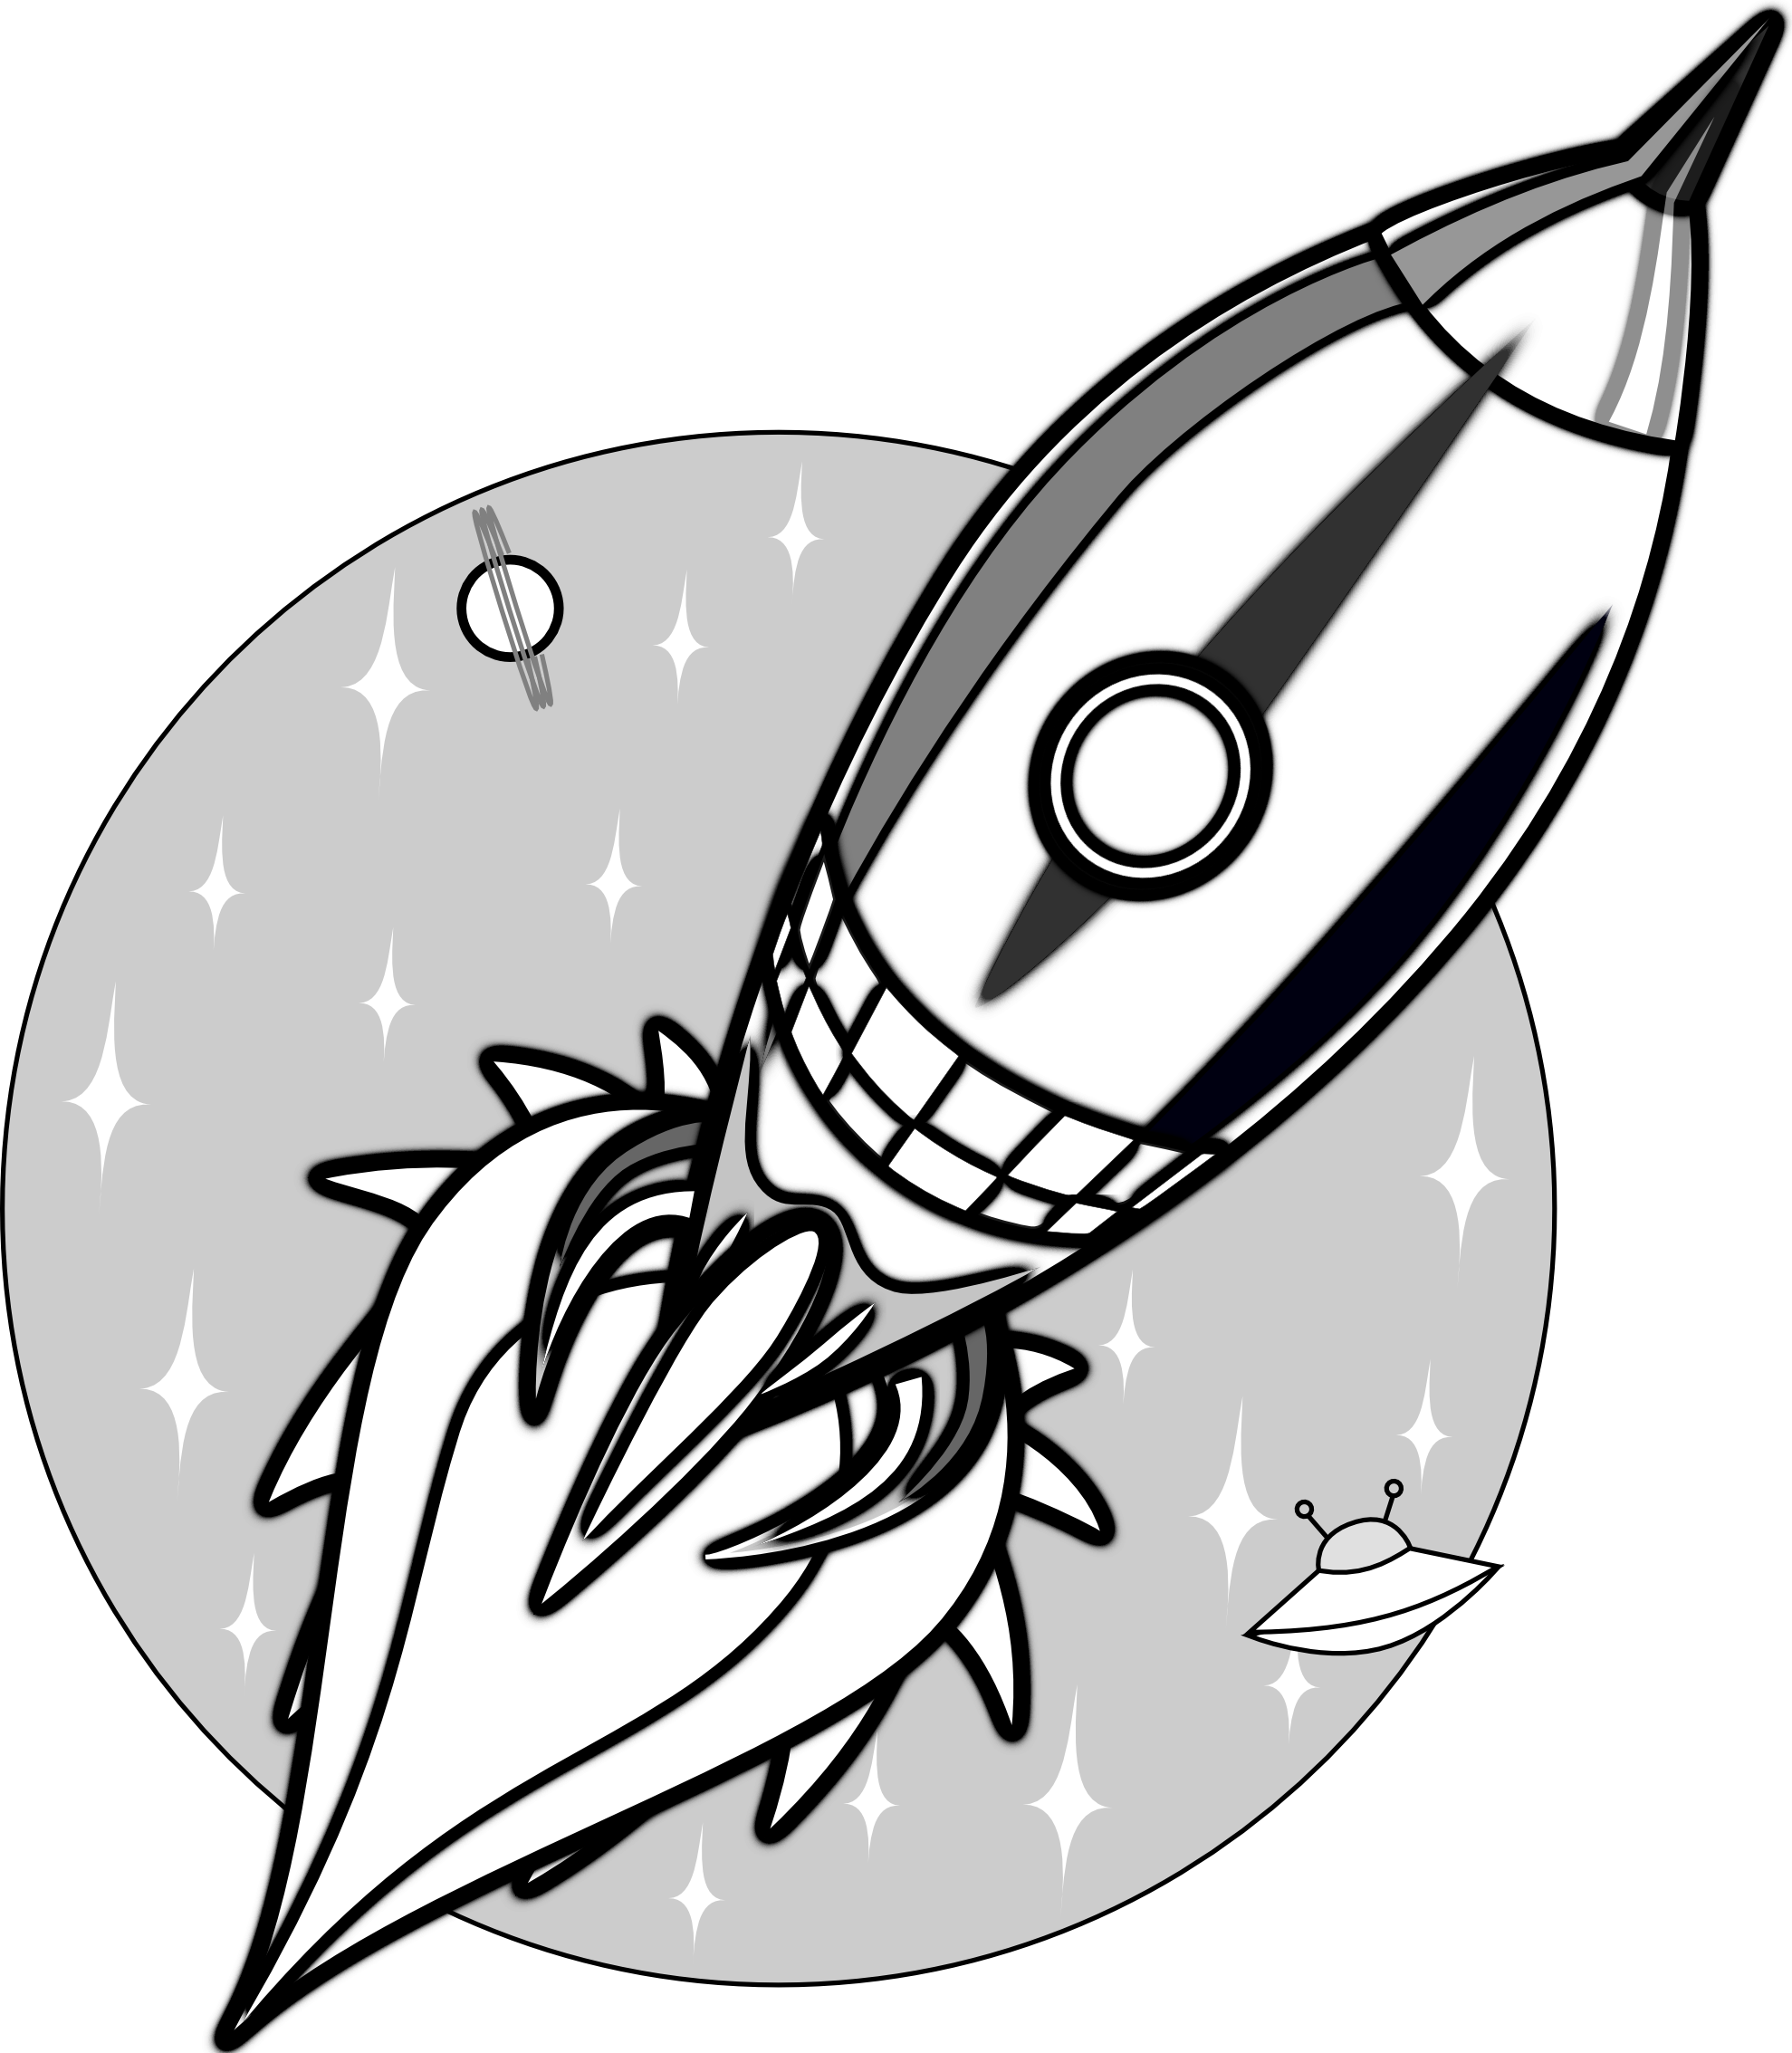 Clipart rocket space craft. Black and white panda